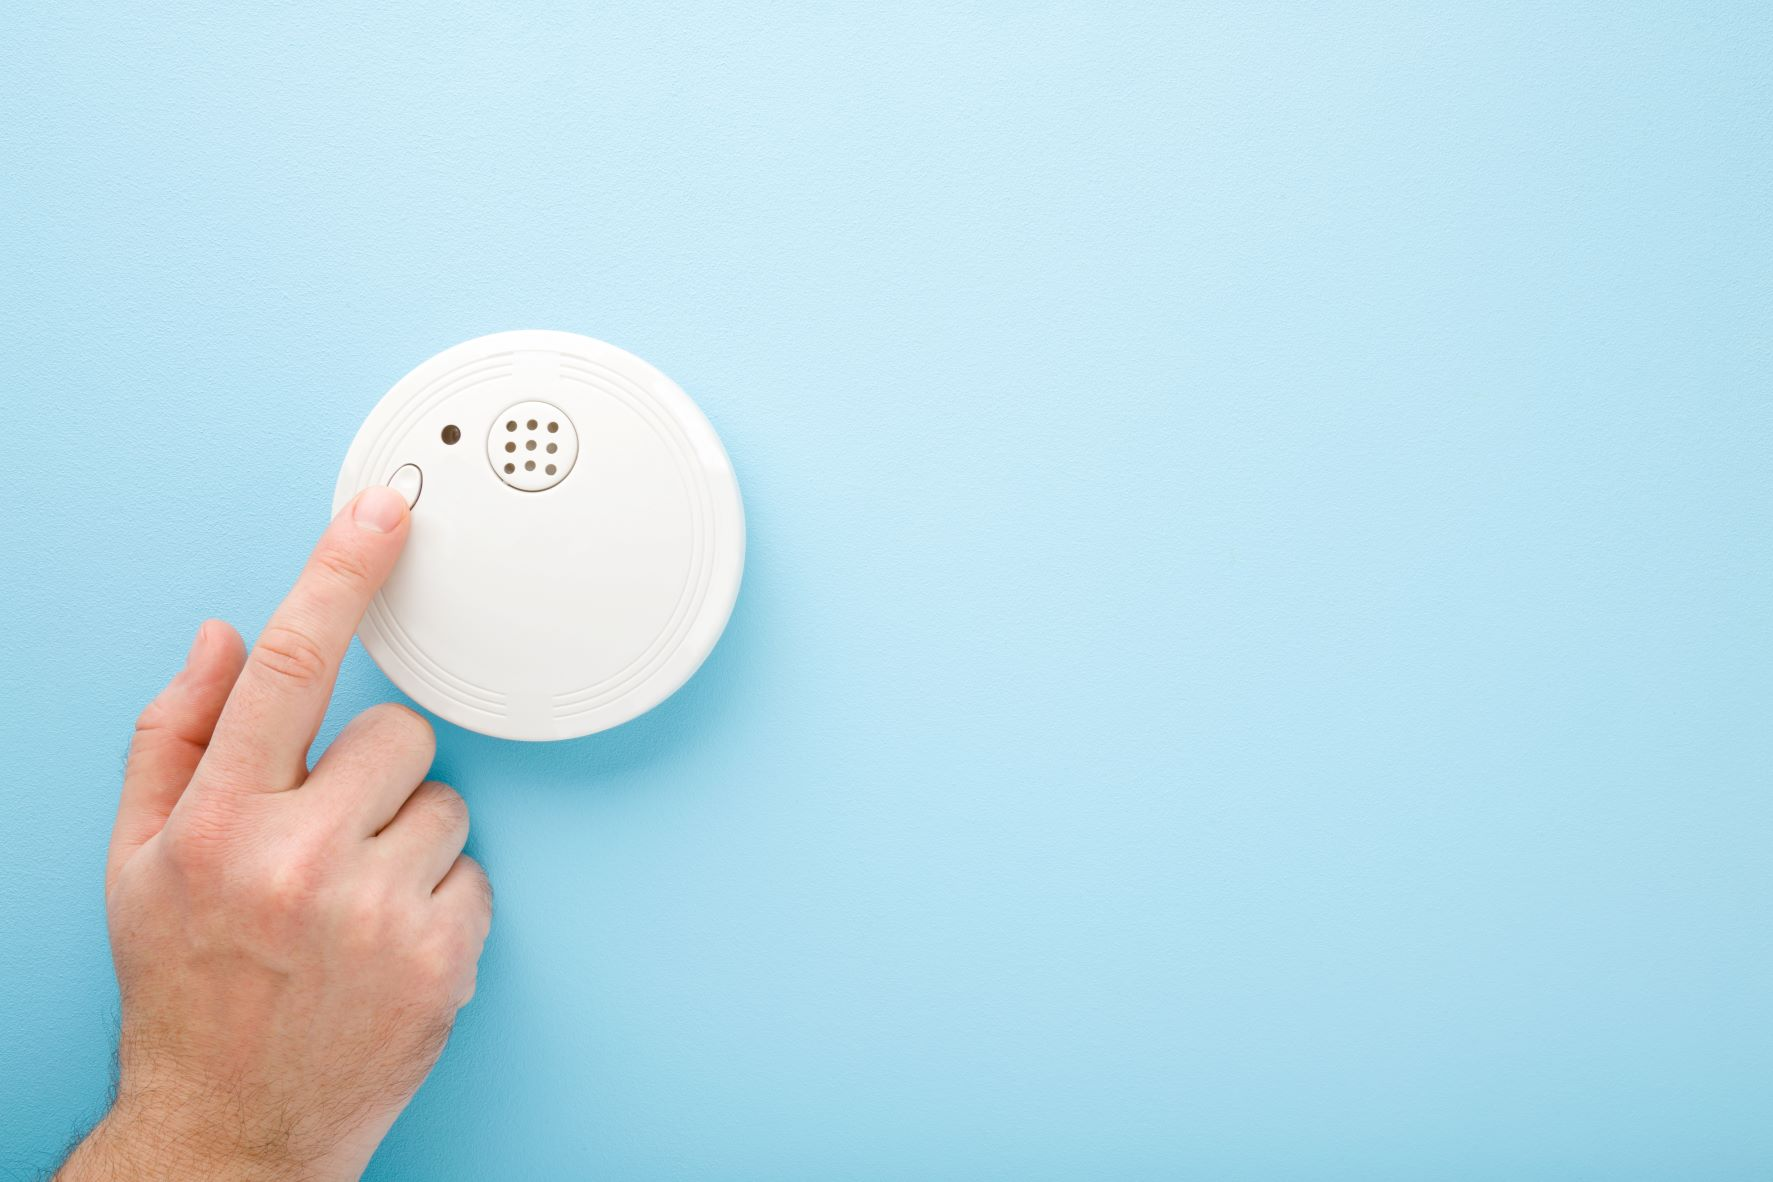 Person pressing test button on fire, smoke, and gas detector alarm